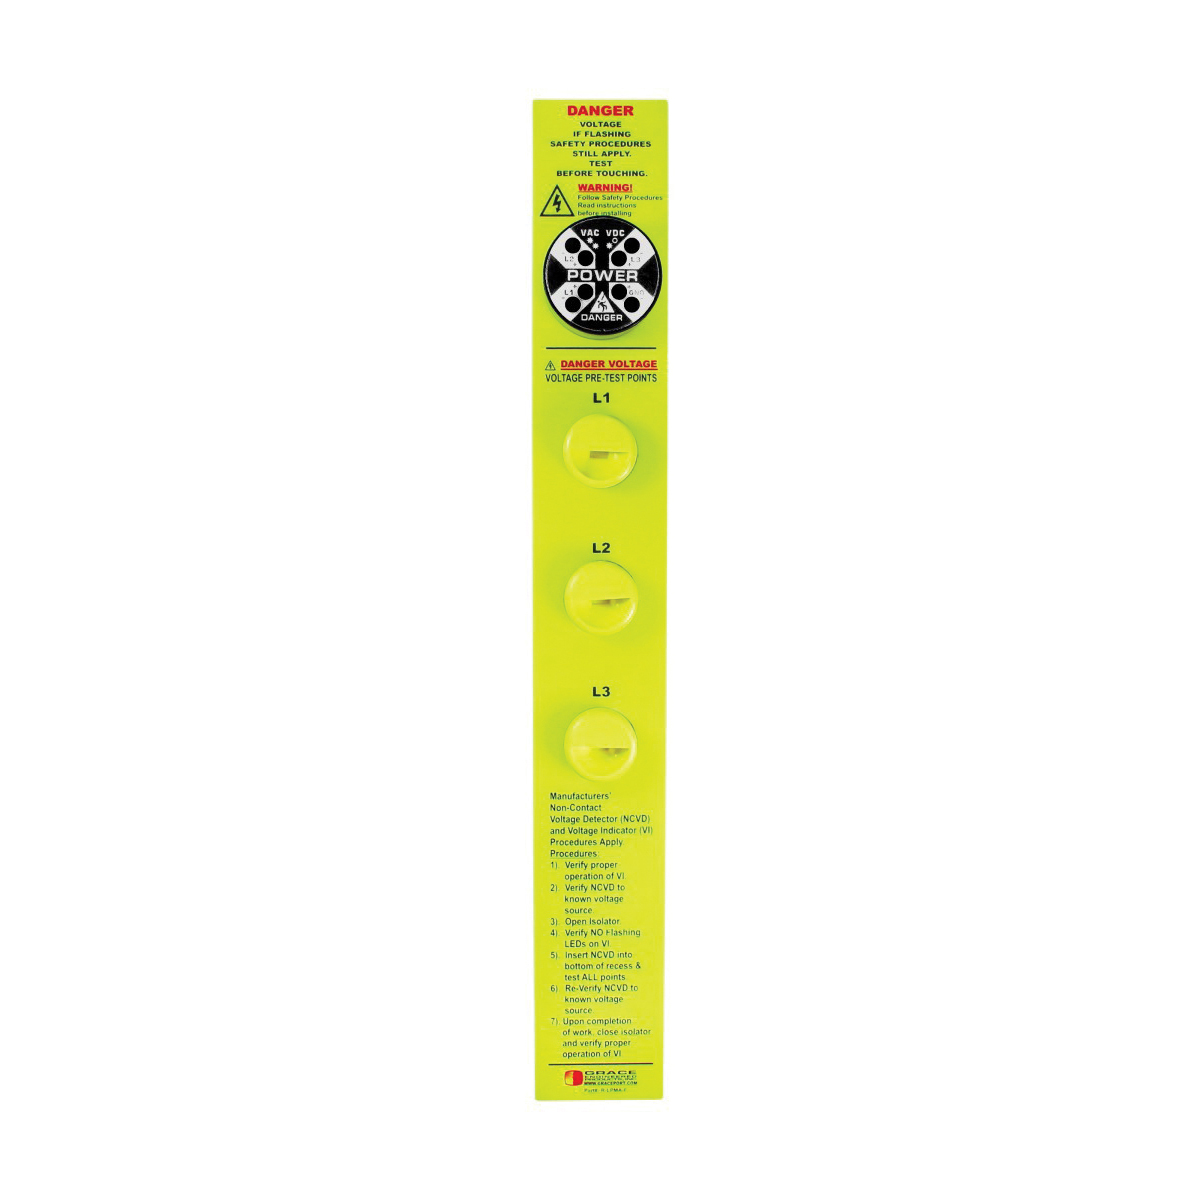 Grace Engineered Products R 1a0033w Nplpf Revere Electric Noncontact Voltage Detector Gets The Job Done Quickly And Safely